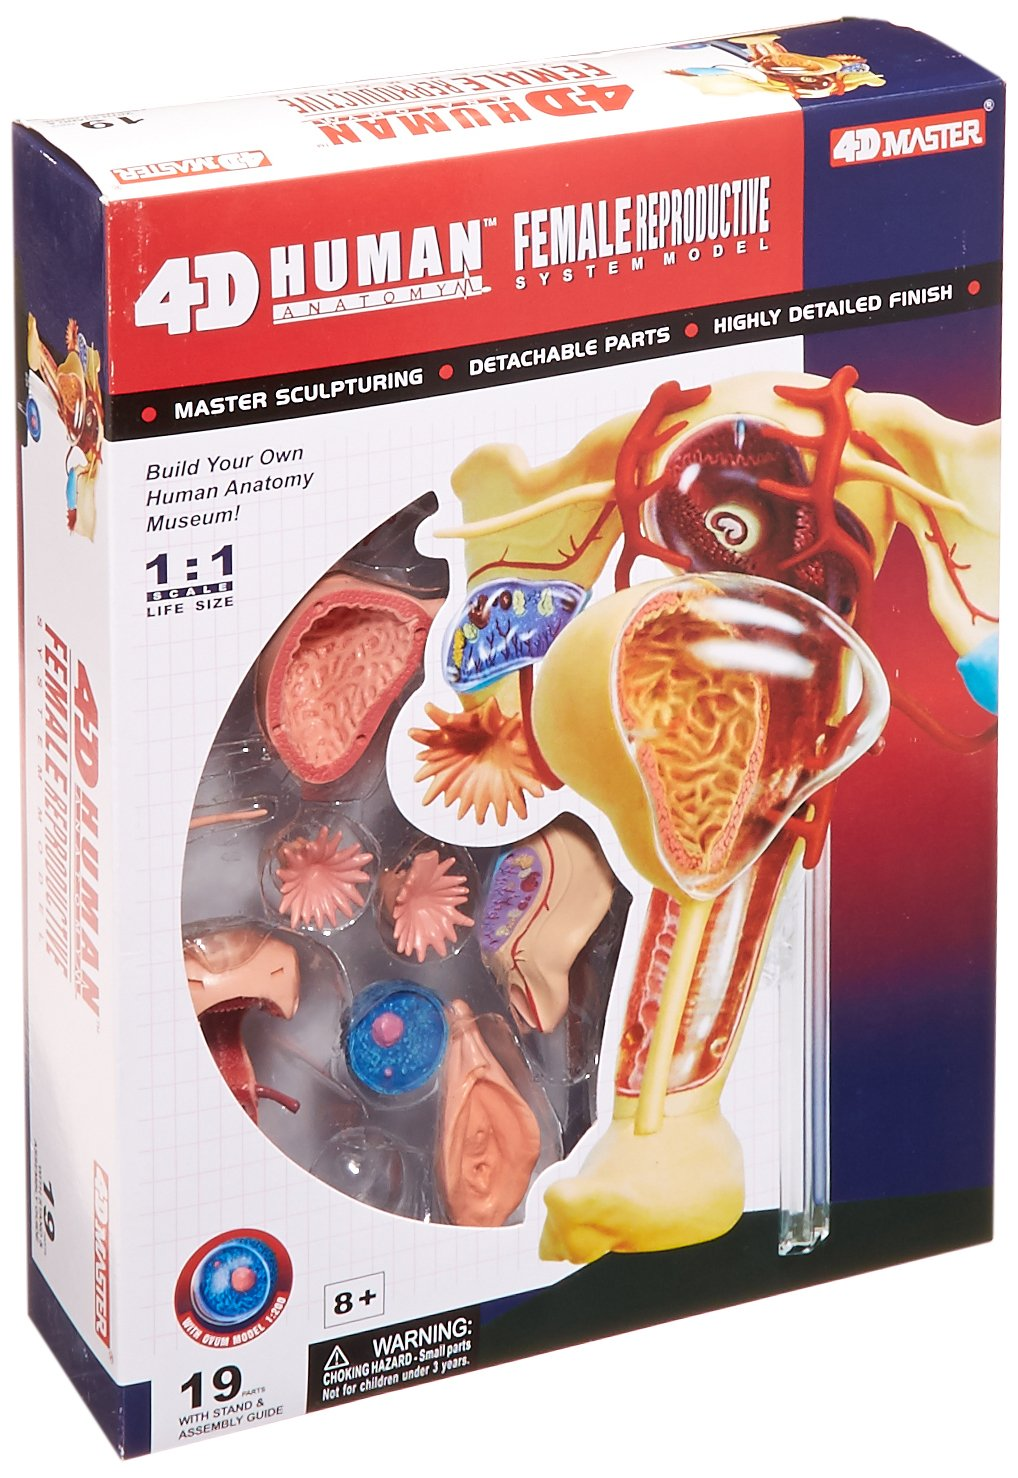 Famemaster 4D-Vision Human Female Reproductive Anatomy Model Free ...